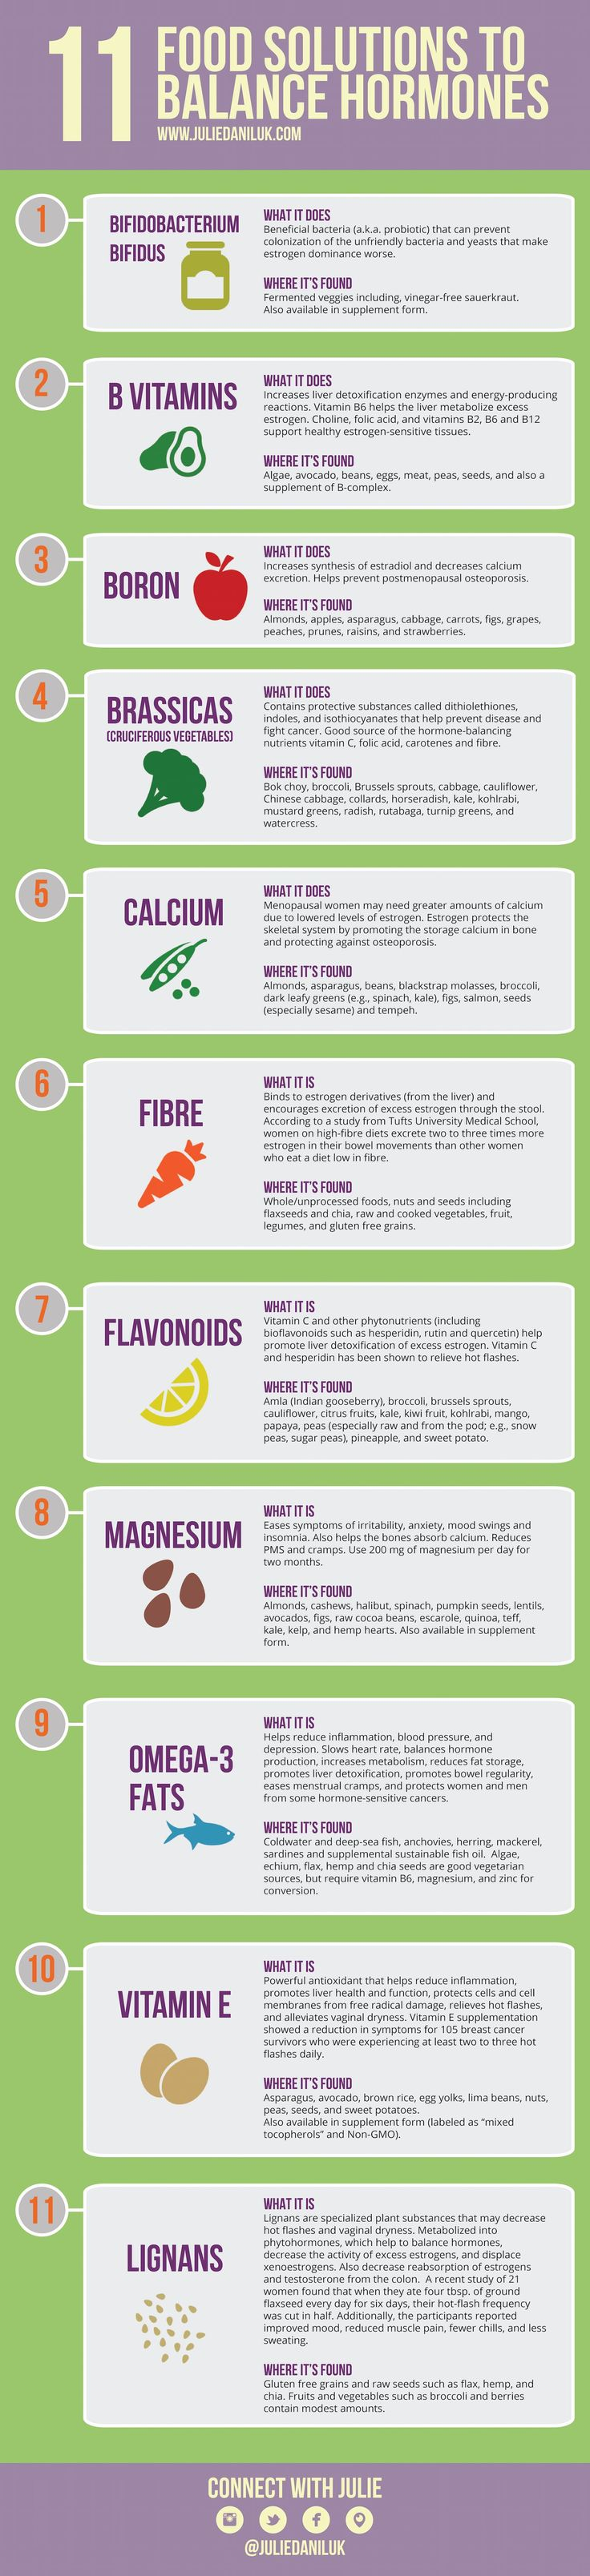 11 Food Solutions To Balance Your Hormones Infographic